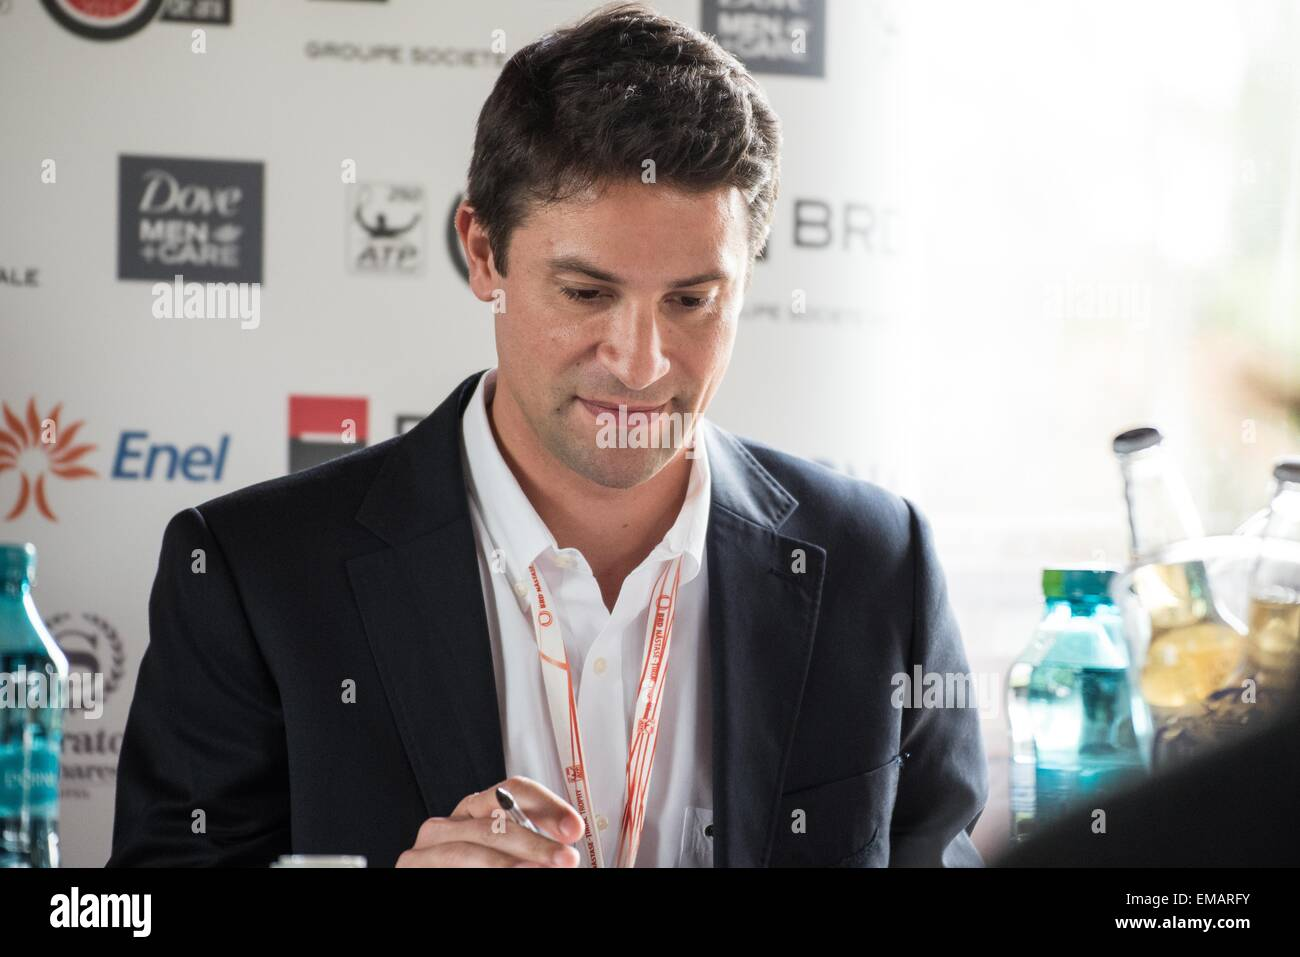 April 18, 2015: Konstantin Haerle - ATP Tour Manager at the press conference before the start of the ATP Tournament - Stock Image